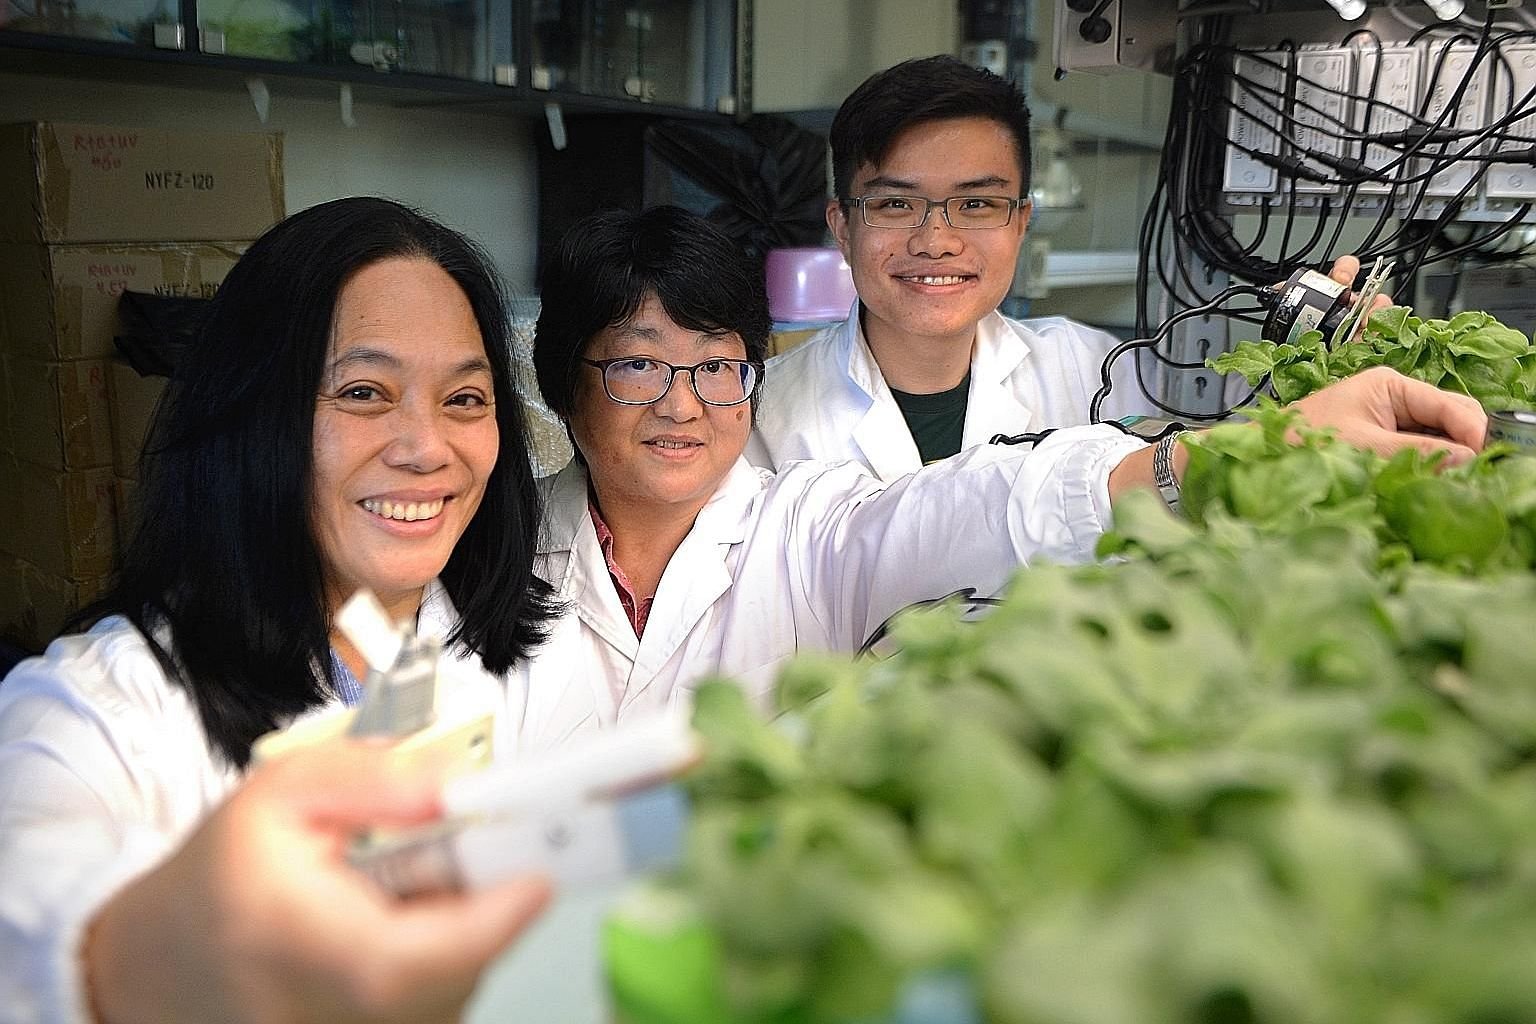 The National Institute of Education's (from left) Associate Professor He Jie, 59, research fellow Qin Lin and student Dominic Koh with the common ice plant, which they experimented with to see if it could grow under purely artificial LED light and in